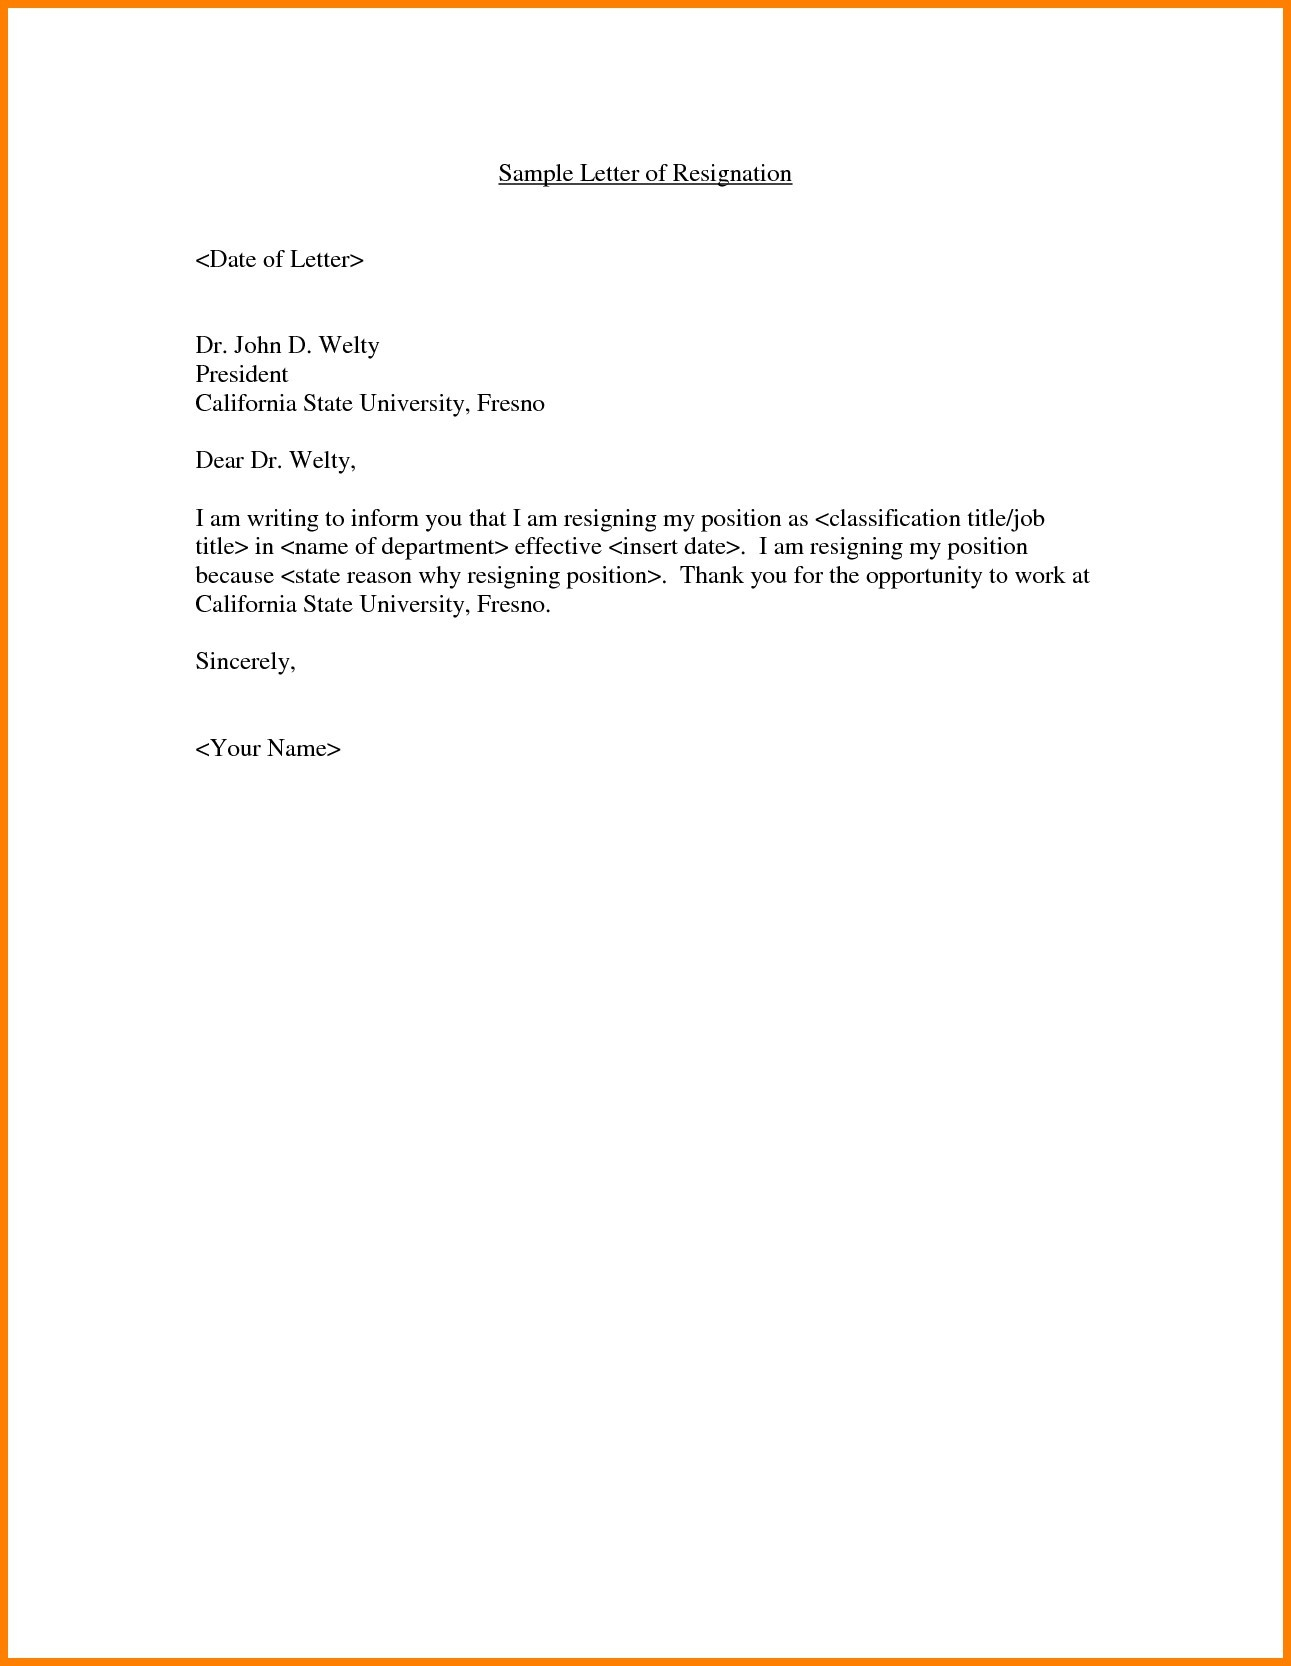 Job Offer Letter Template Doc - Employment Fer Letter Template Doc Copy Resignation Letter Sample